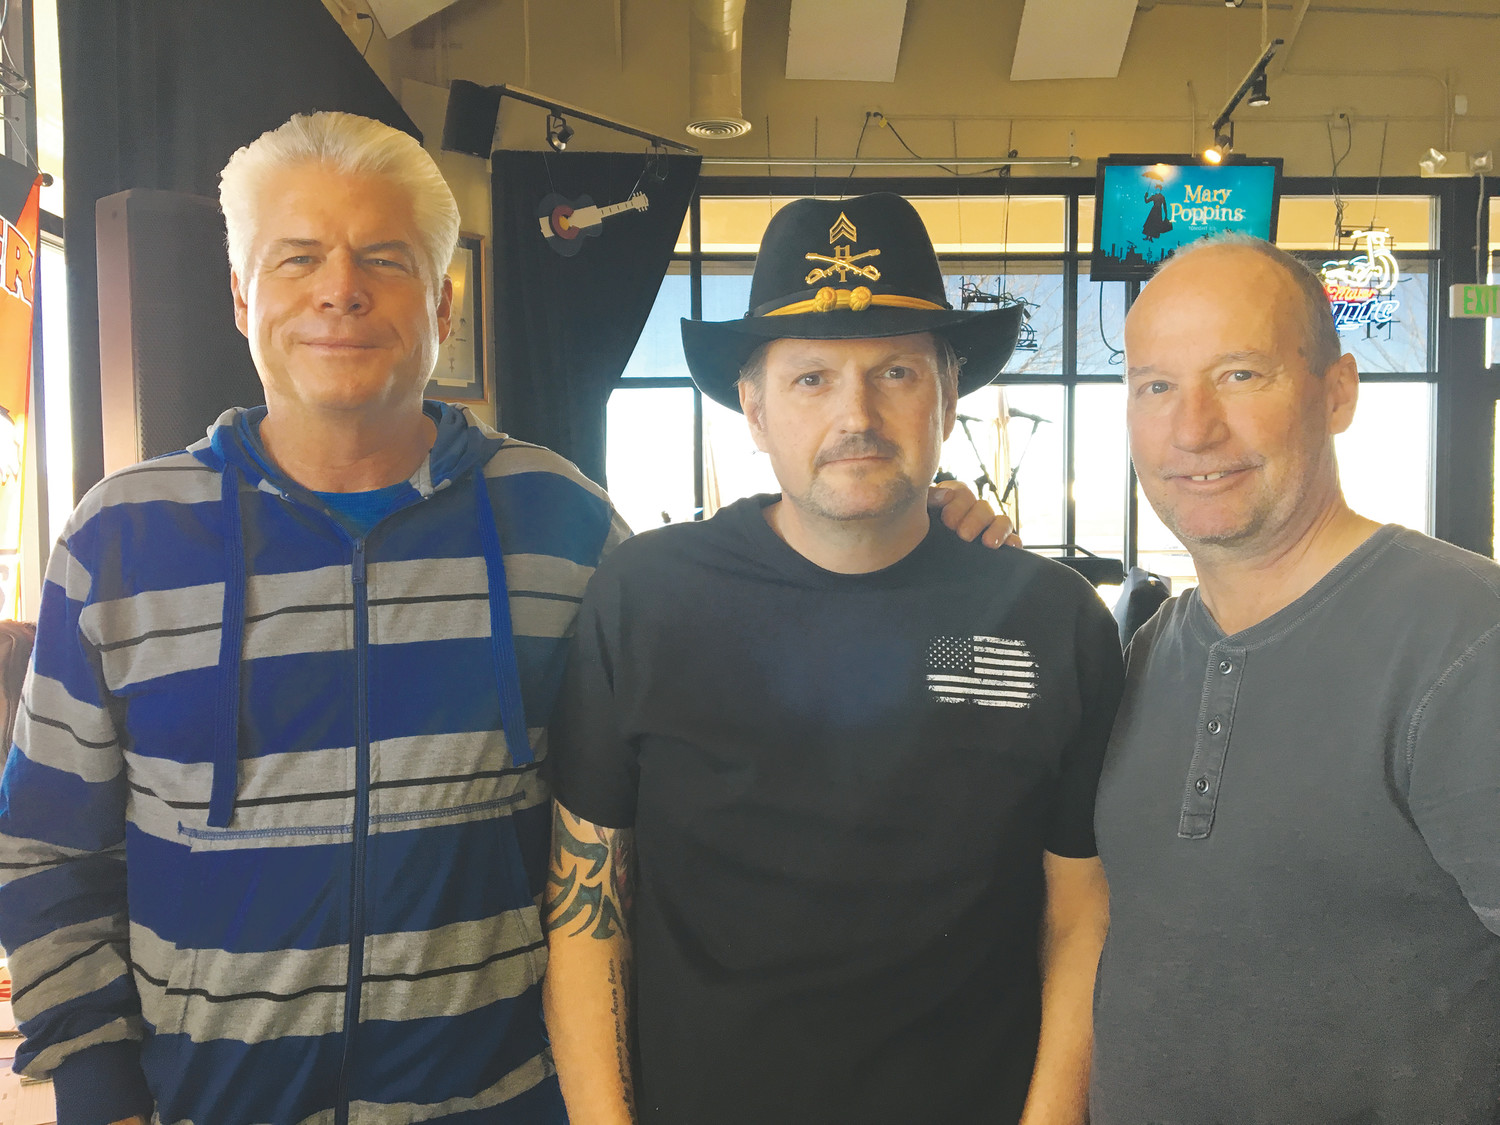 Ron Meier, left, and Bob Nobles, right, organized a fundraiser Dec. 9 at Takoda Tavern in Parker to help retired police officer and veteran Christian Redman with medical and living expenses. Redman is battling an aggressive form of colon cancer.